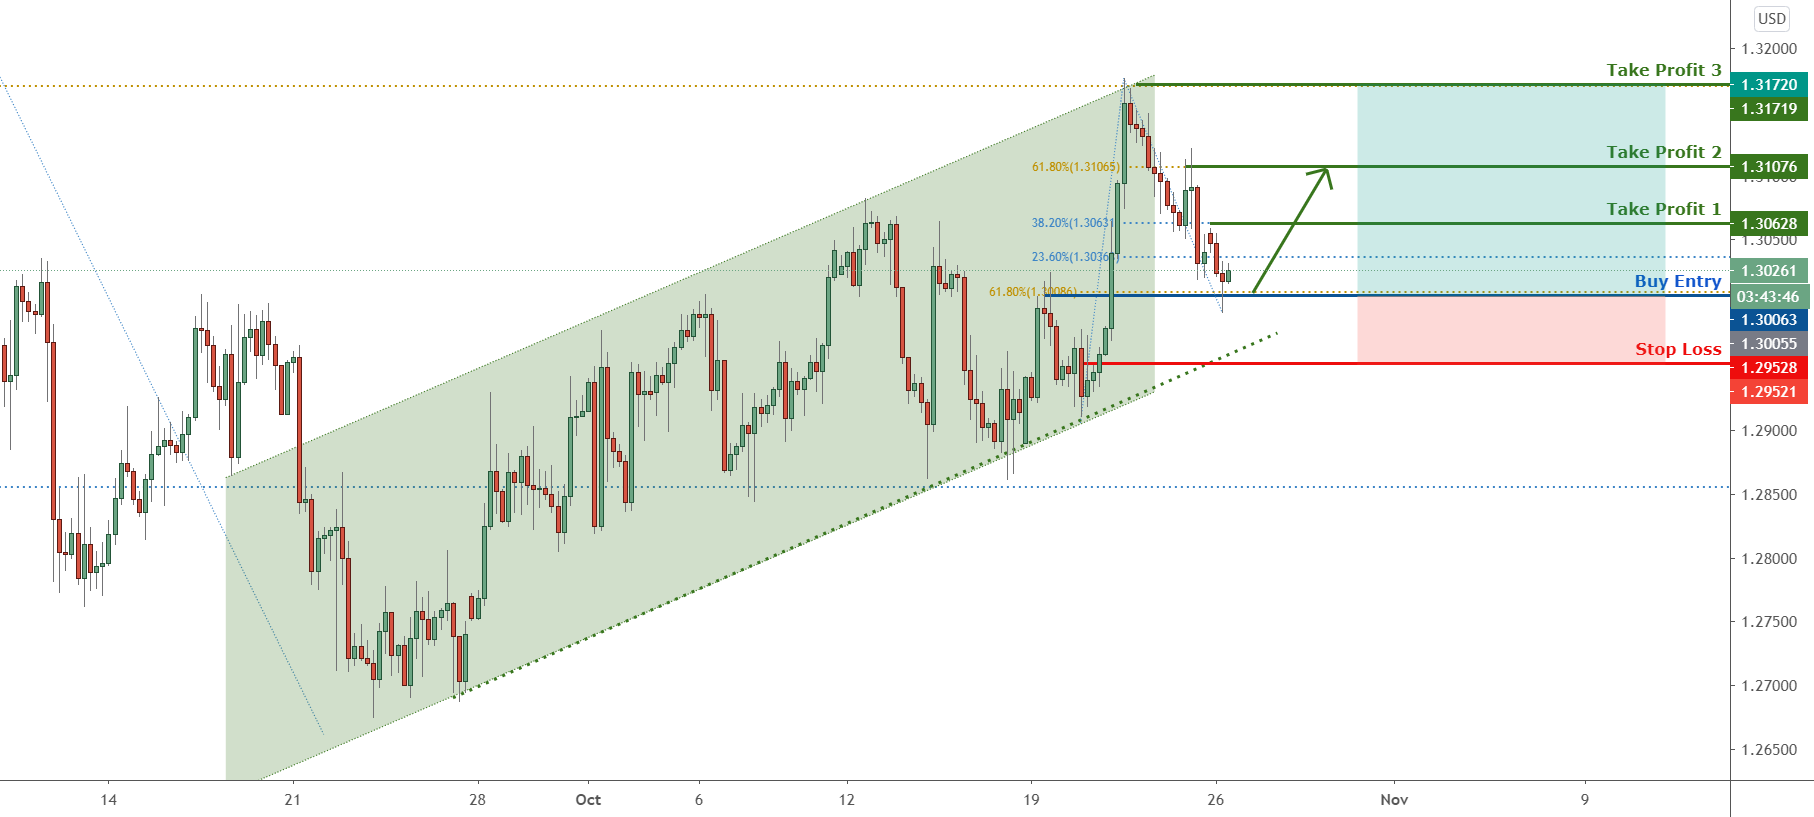 GBPUSD retesting the channel, potential for further bounce ! for FX:GBPUSD by FXCM